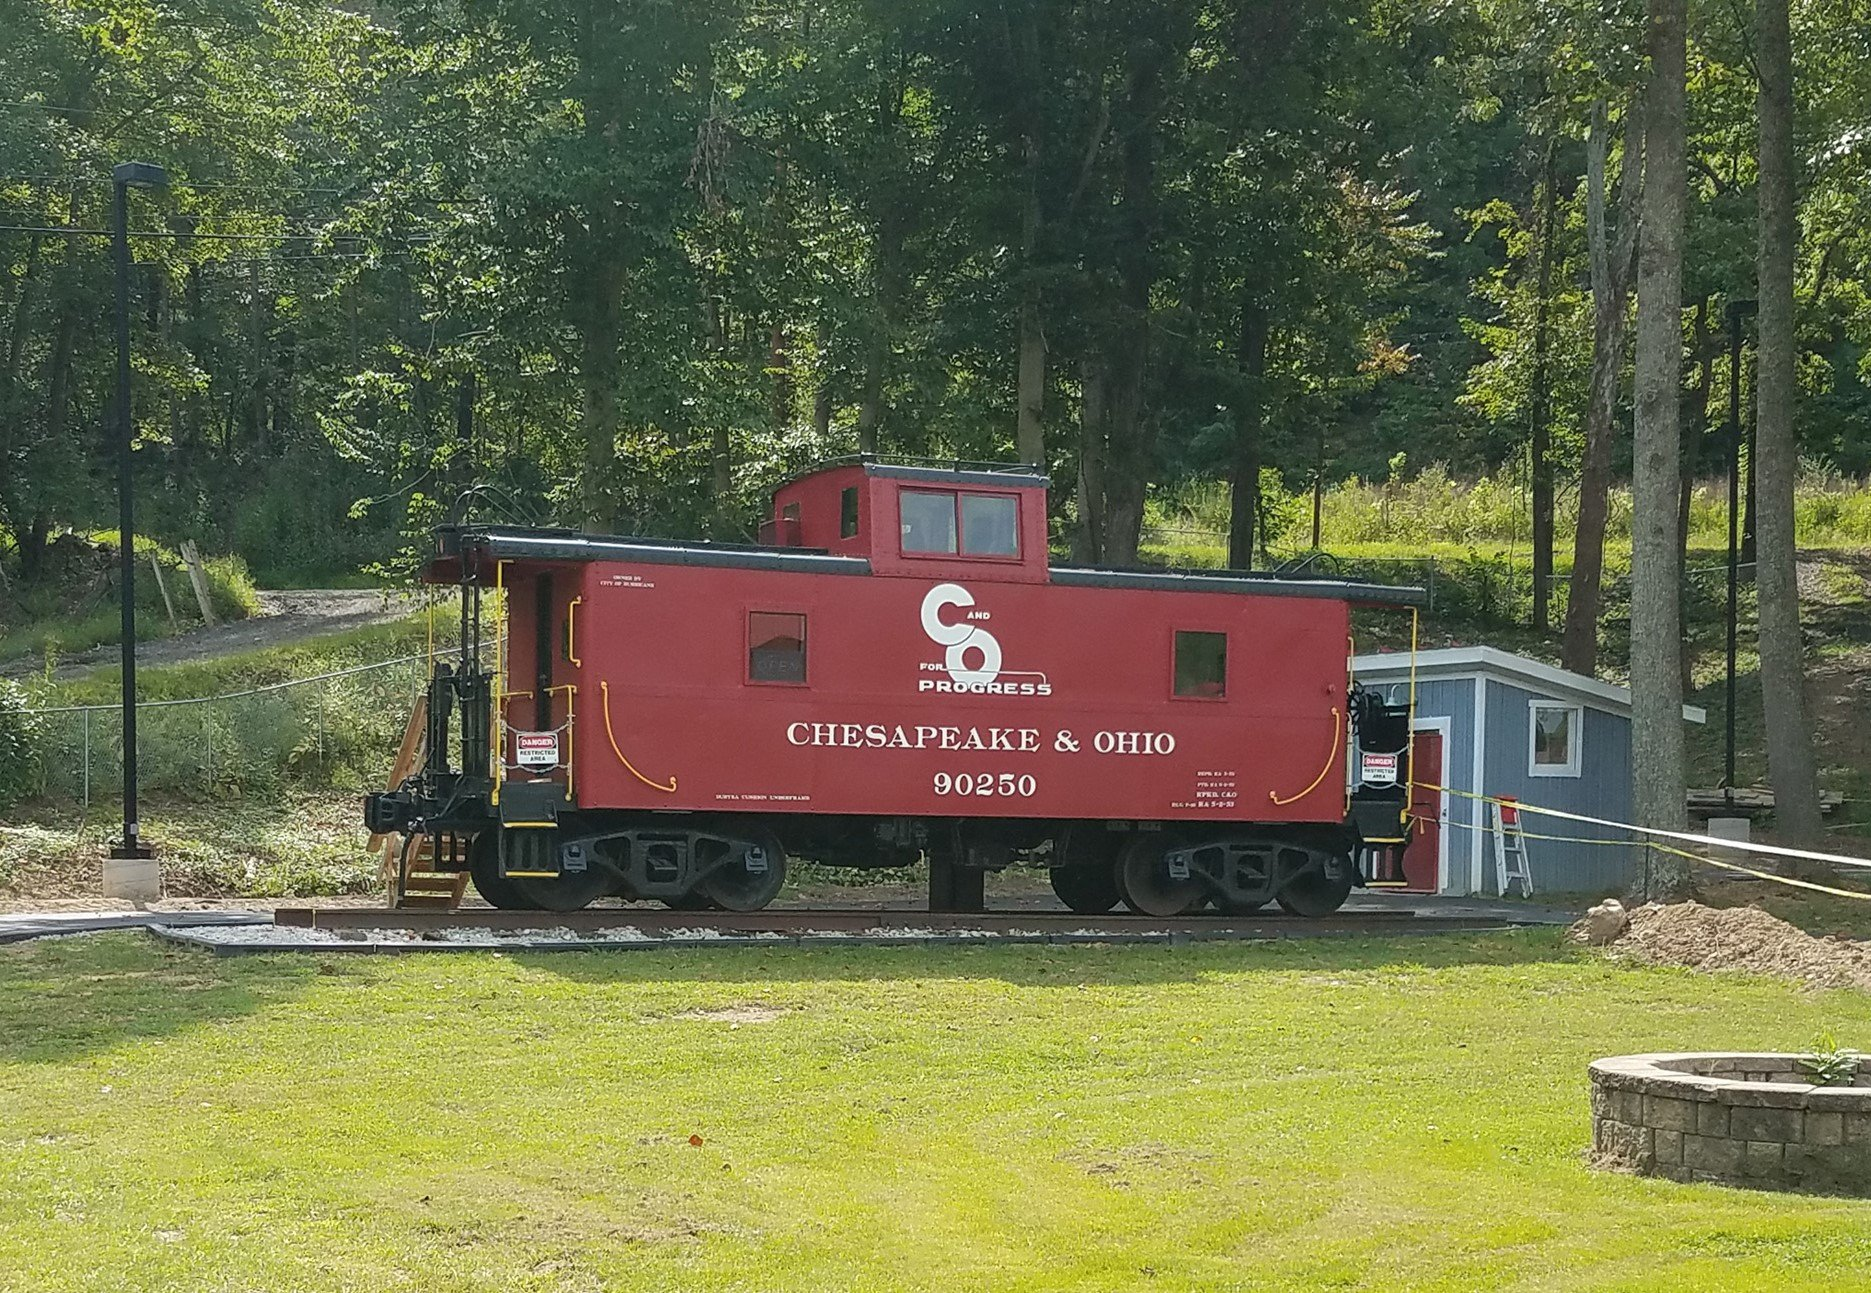 The exterior of Caboose 90250 has been largely restored to its original appearance. The inside contains a small museum; reservations must be scheduled in advance for a tour. Image courtesy of the City of Hurricane.